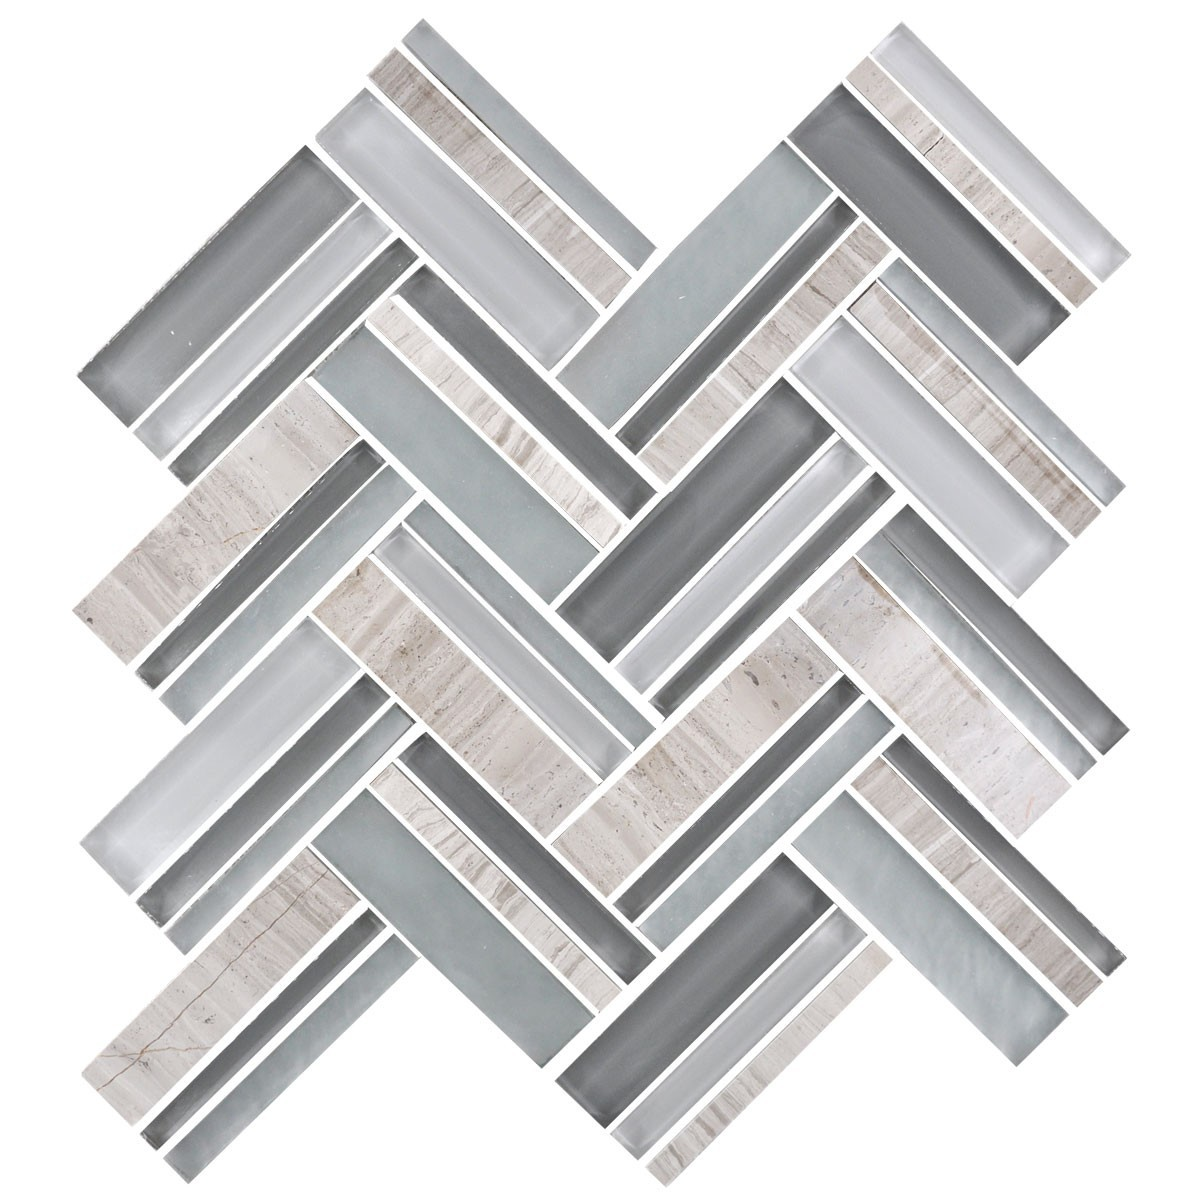 12.4 in. x 13.8 in. Glass and Stone Blend Strip Mosaic Tile - 8mm Thickness (DK-8NF0606-004)